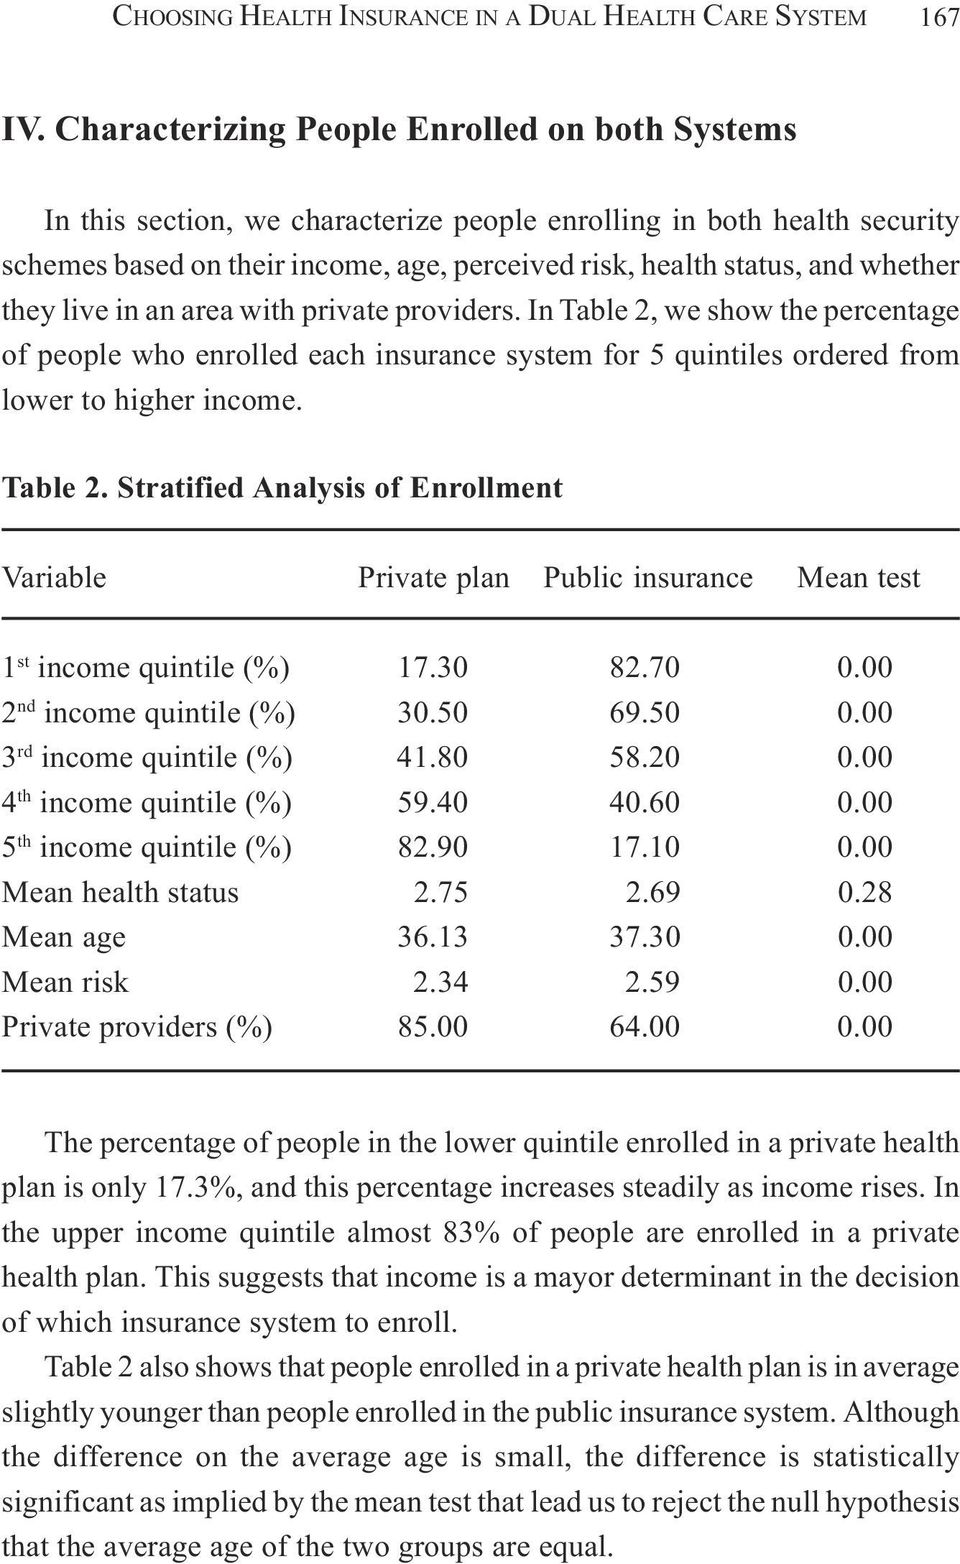 they live in an area with private providers. In Table 2, we show the percentage of people who enrolled each insurance system for 5 quintiles ordered from lower to higher income. Table 2. Stratified Analysis of Enrollment Variable Private plan Public insurance Mean test 1 st income quintile (%) 17.